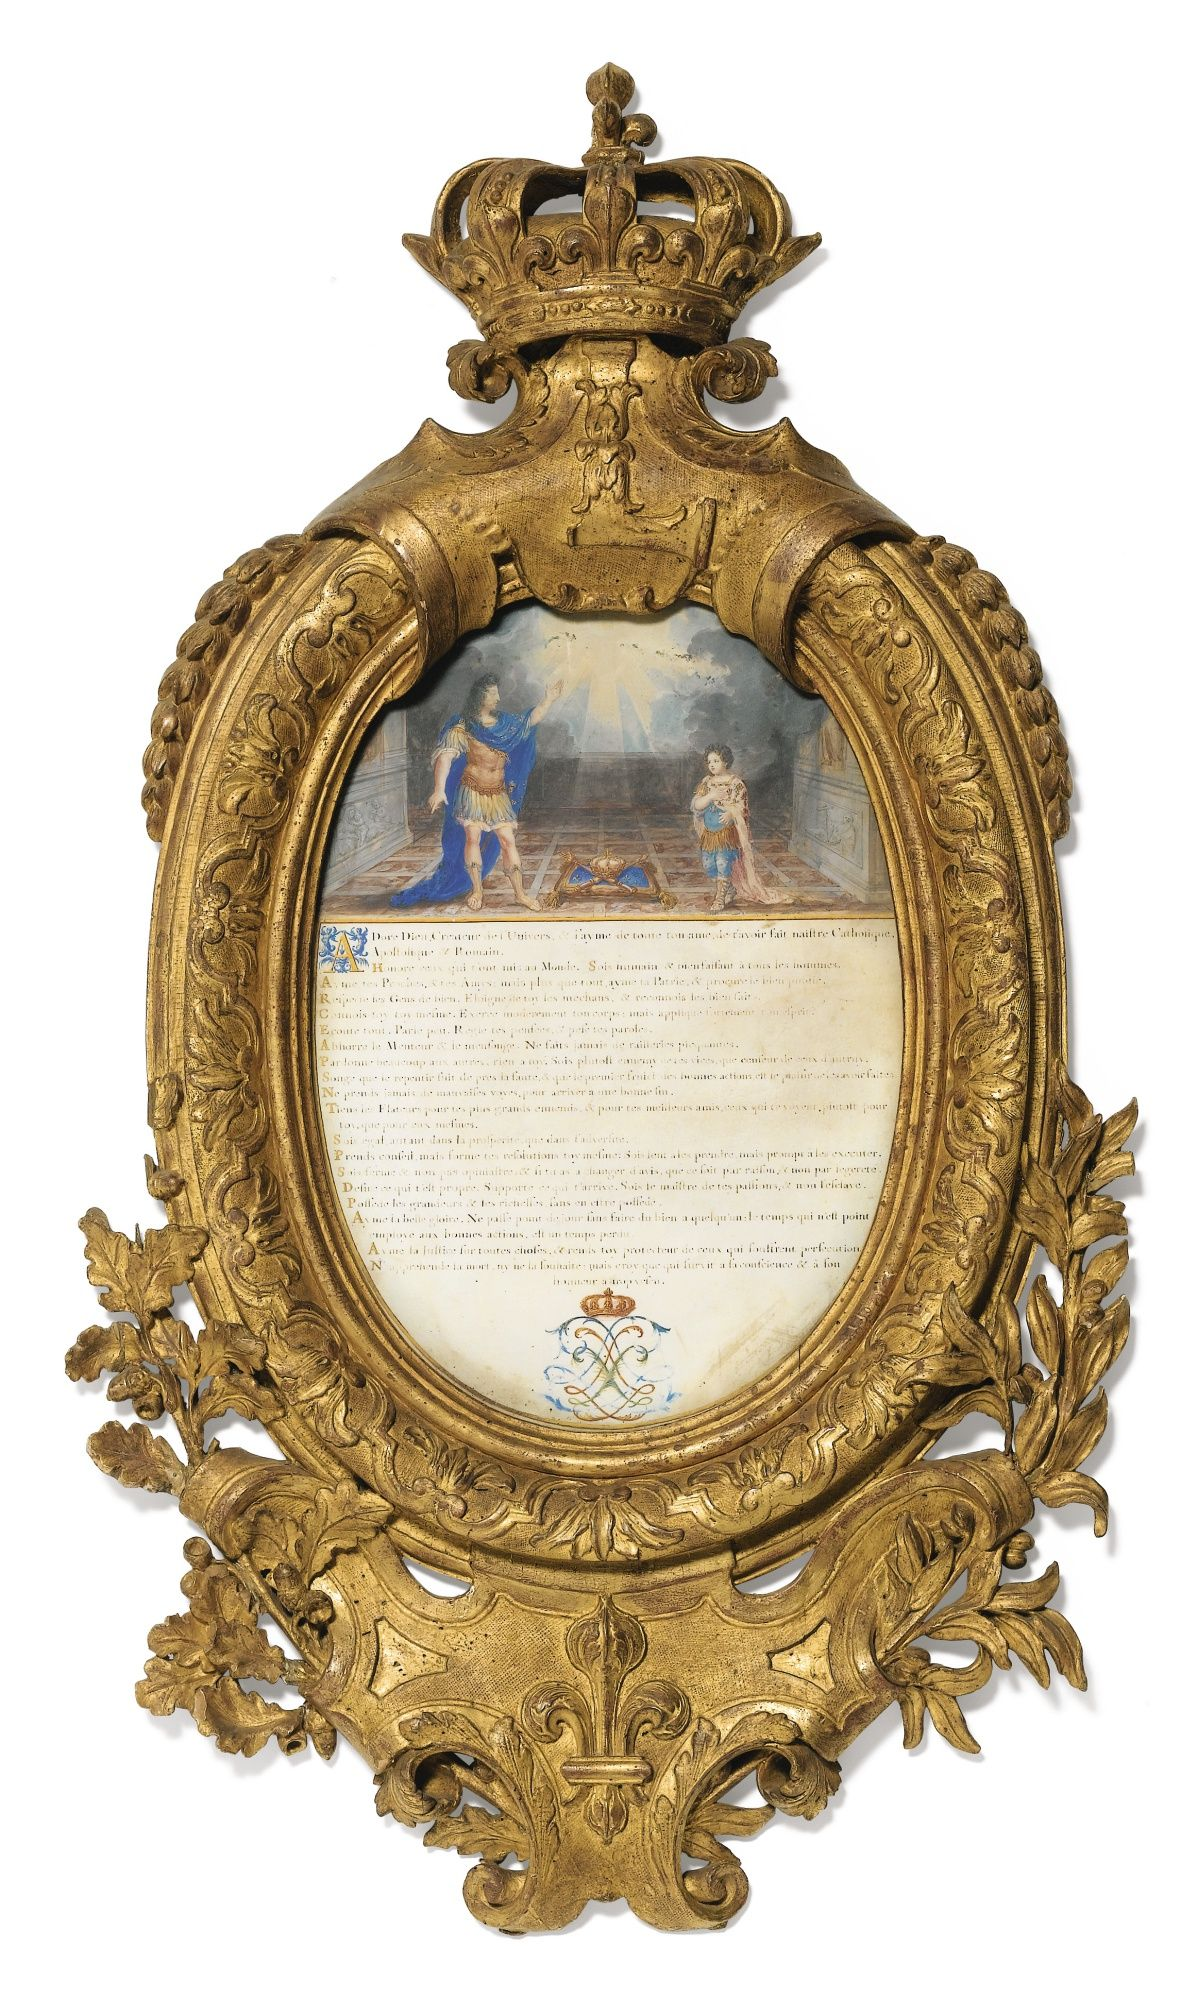 Louis Xiv Exhorting The Dauphin Ink And Oil On Vellum Circa 1670 In A Carved Giltwood Frame Cornici Disegni Di Alberi Legno